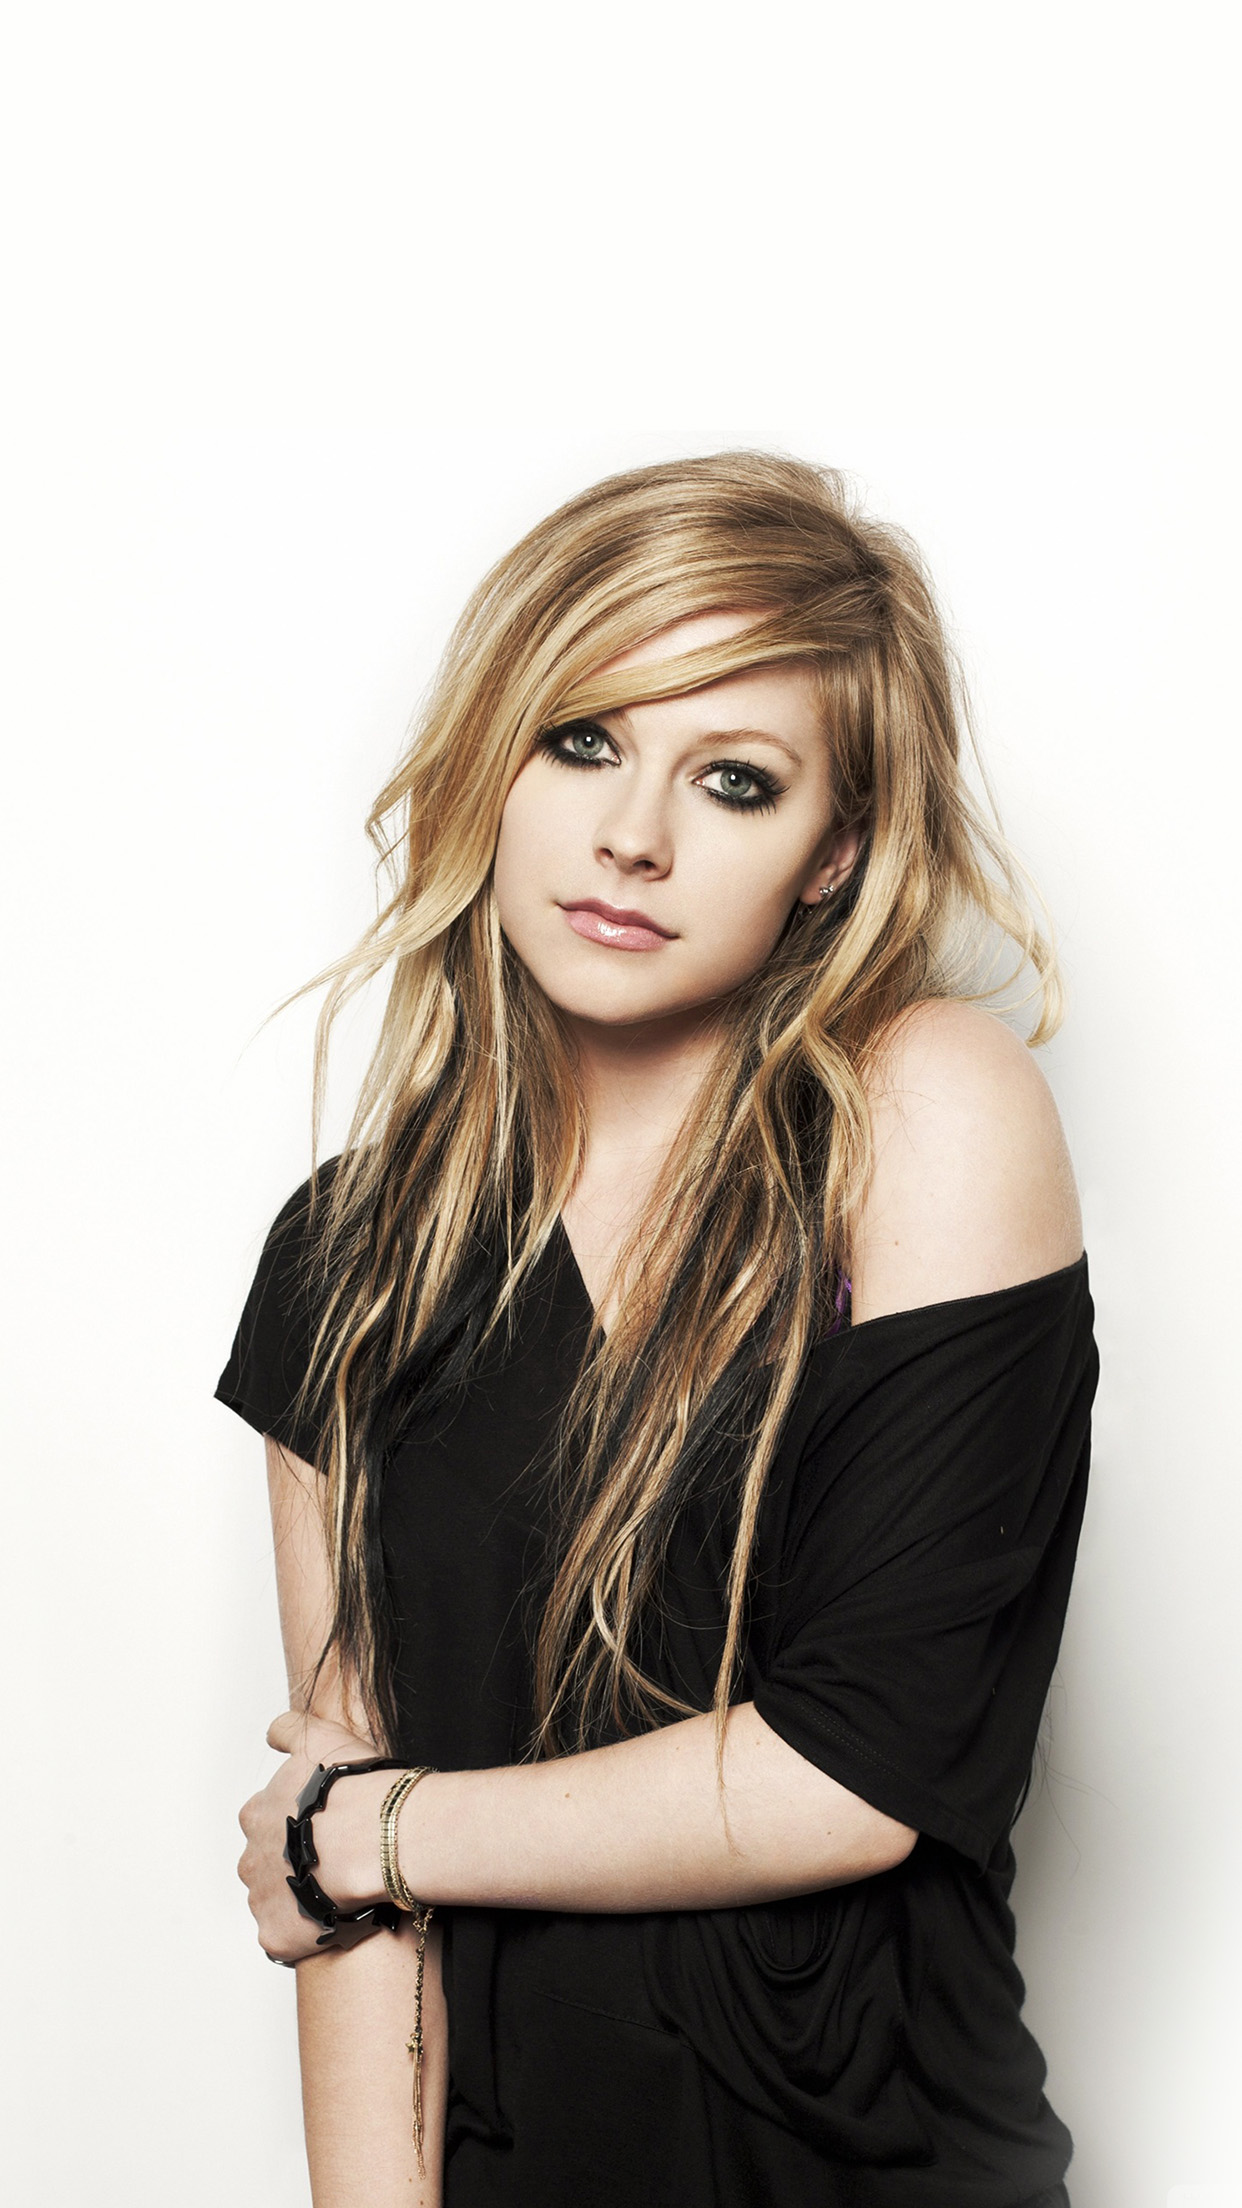 Htc One Wallpaper Hd Hg32 Avril Lavigne Music Star Beauty Papers Co